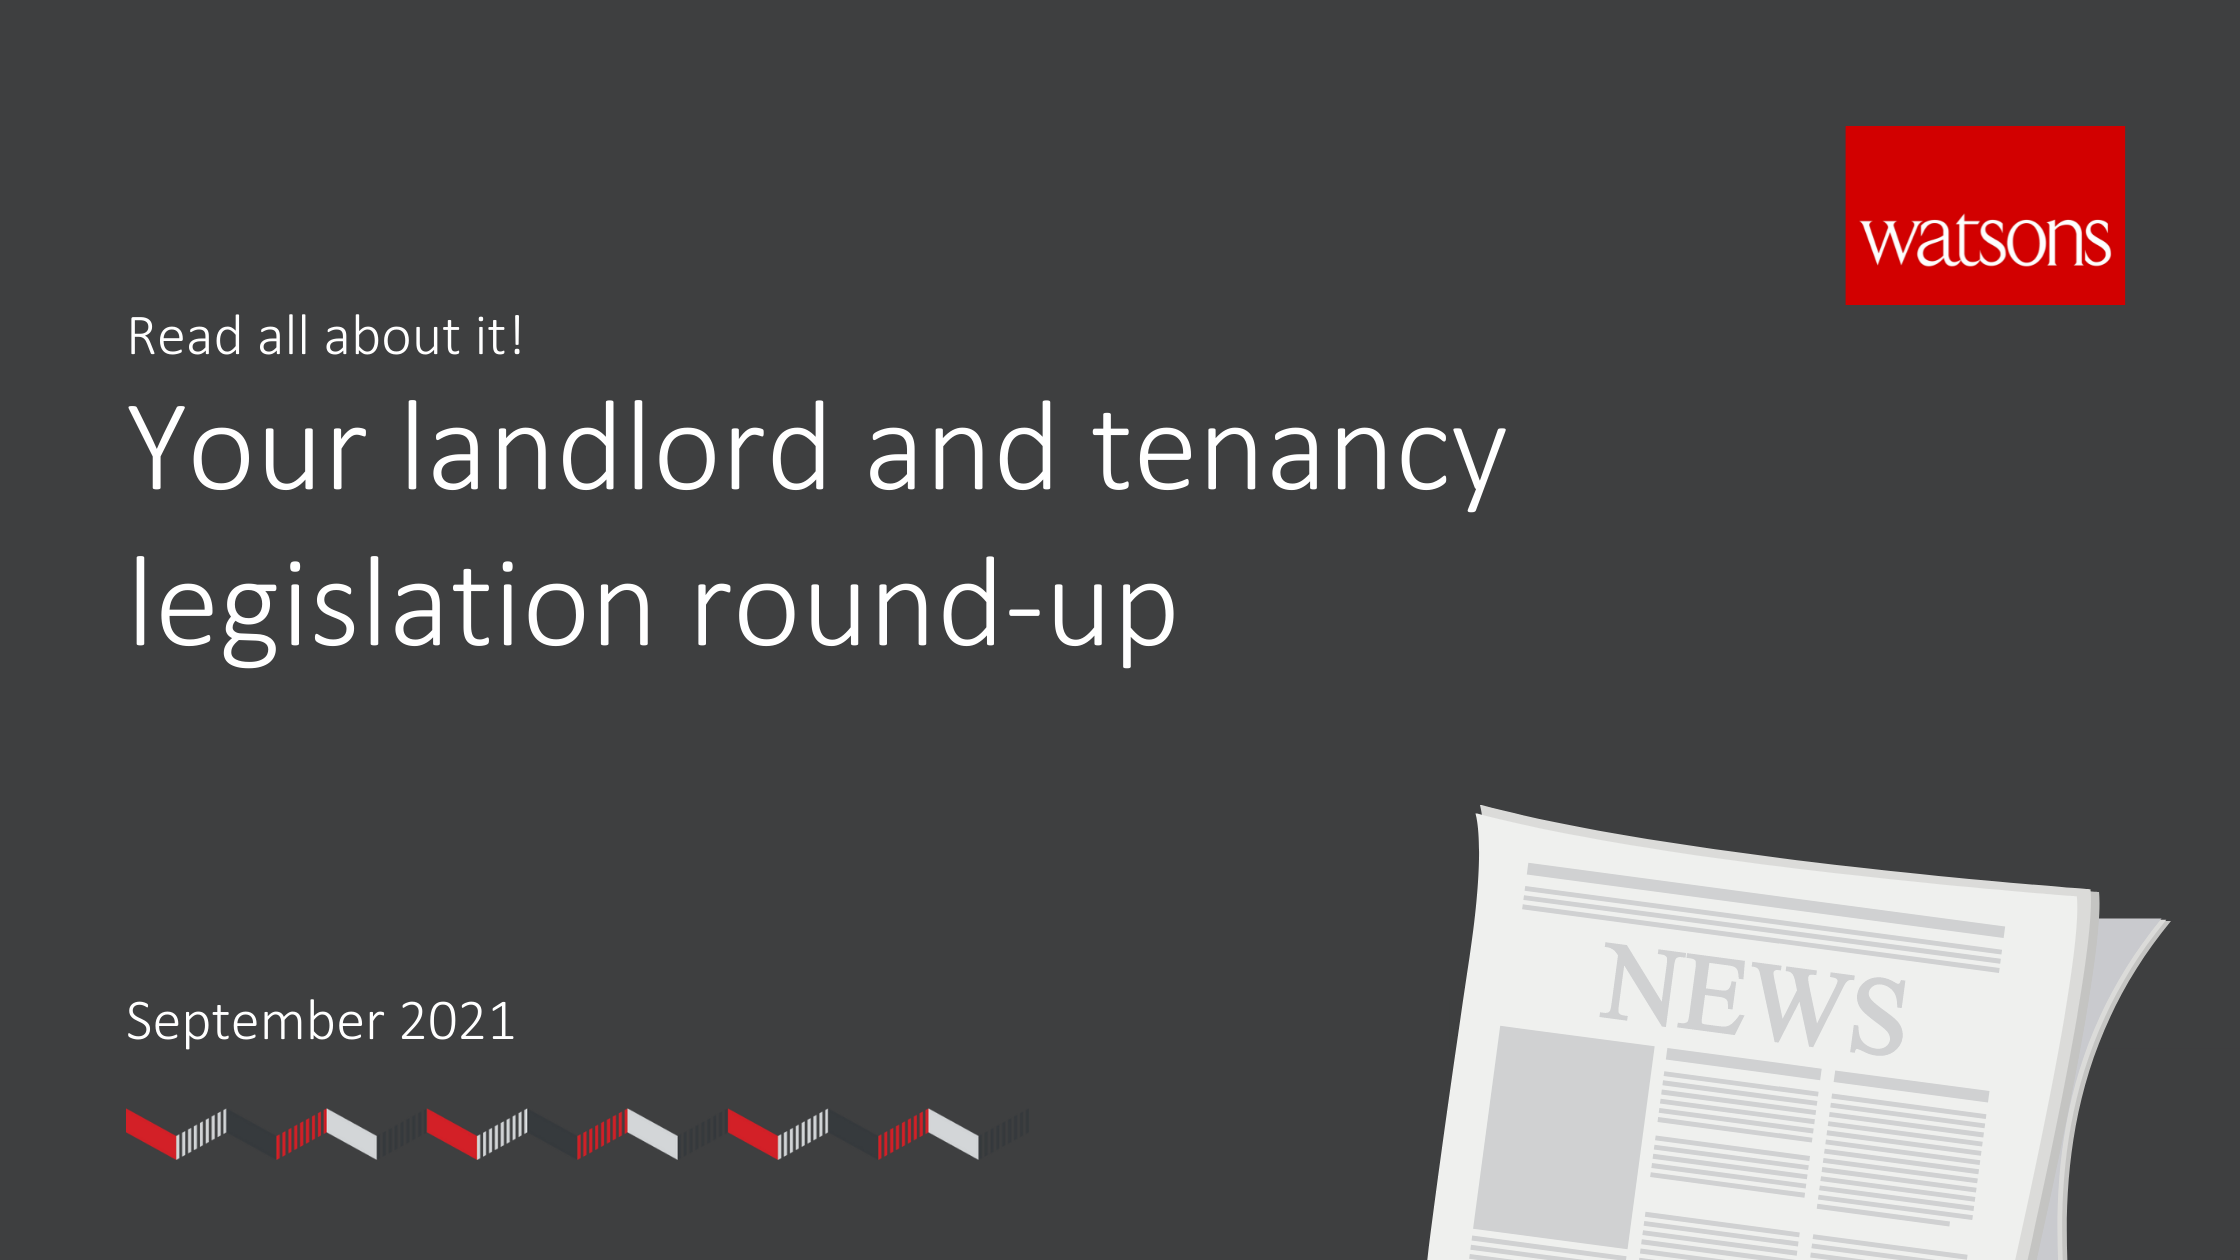 Read all about it! Your landlord and tenancy legislation round-up from Watsons Property